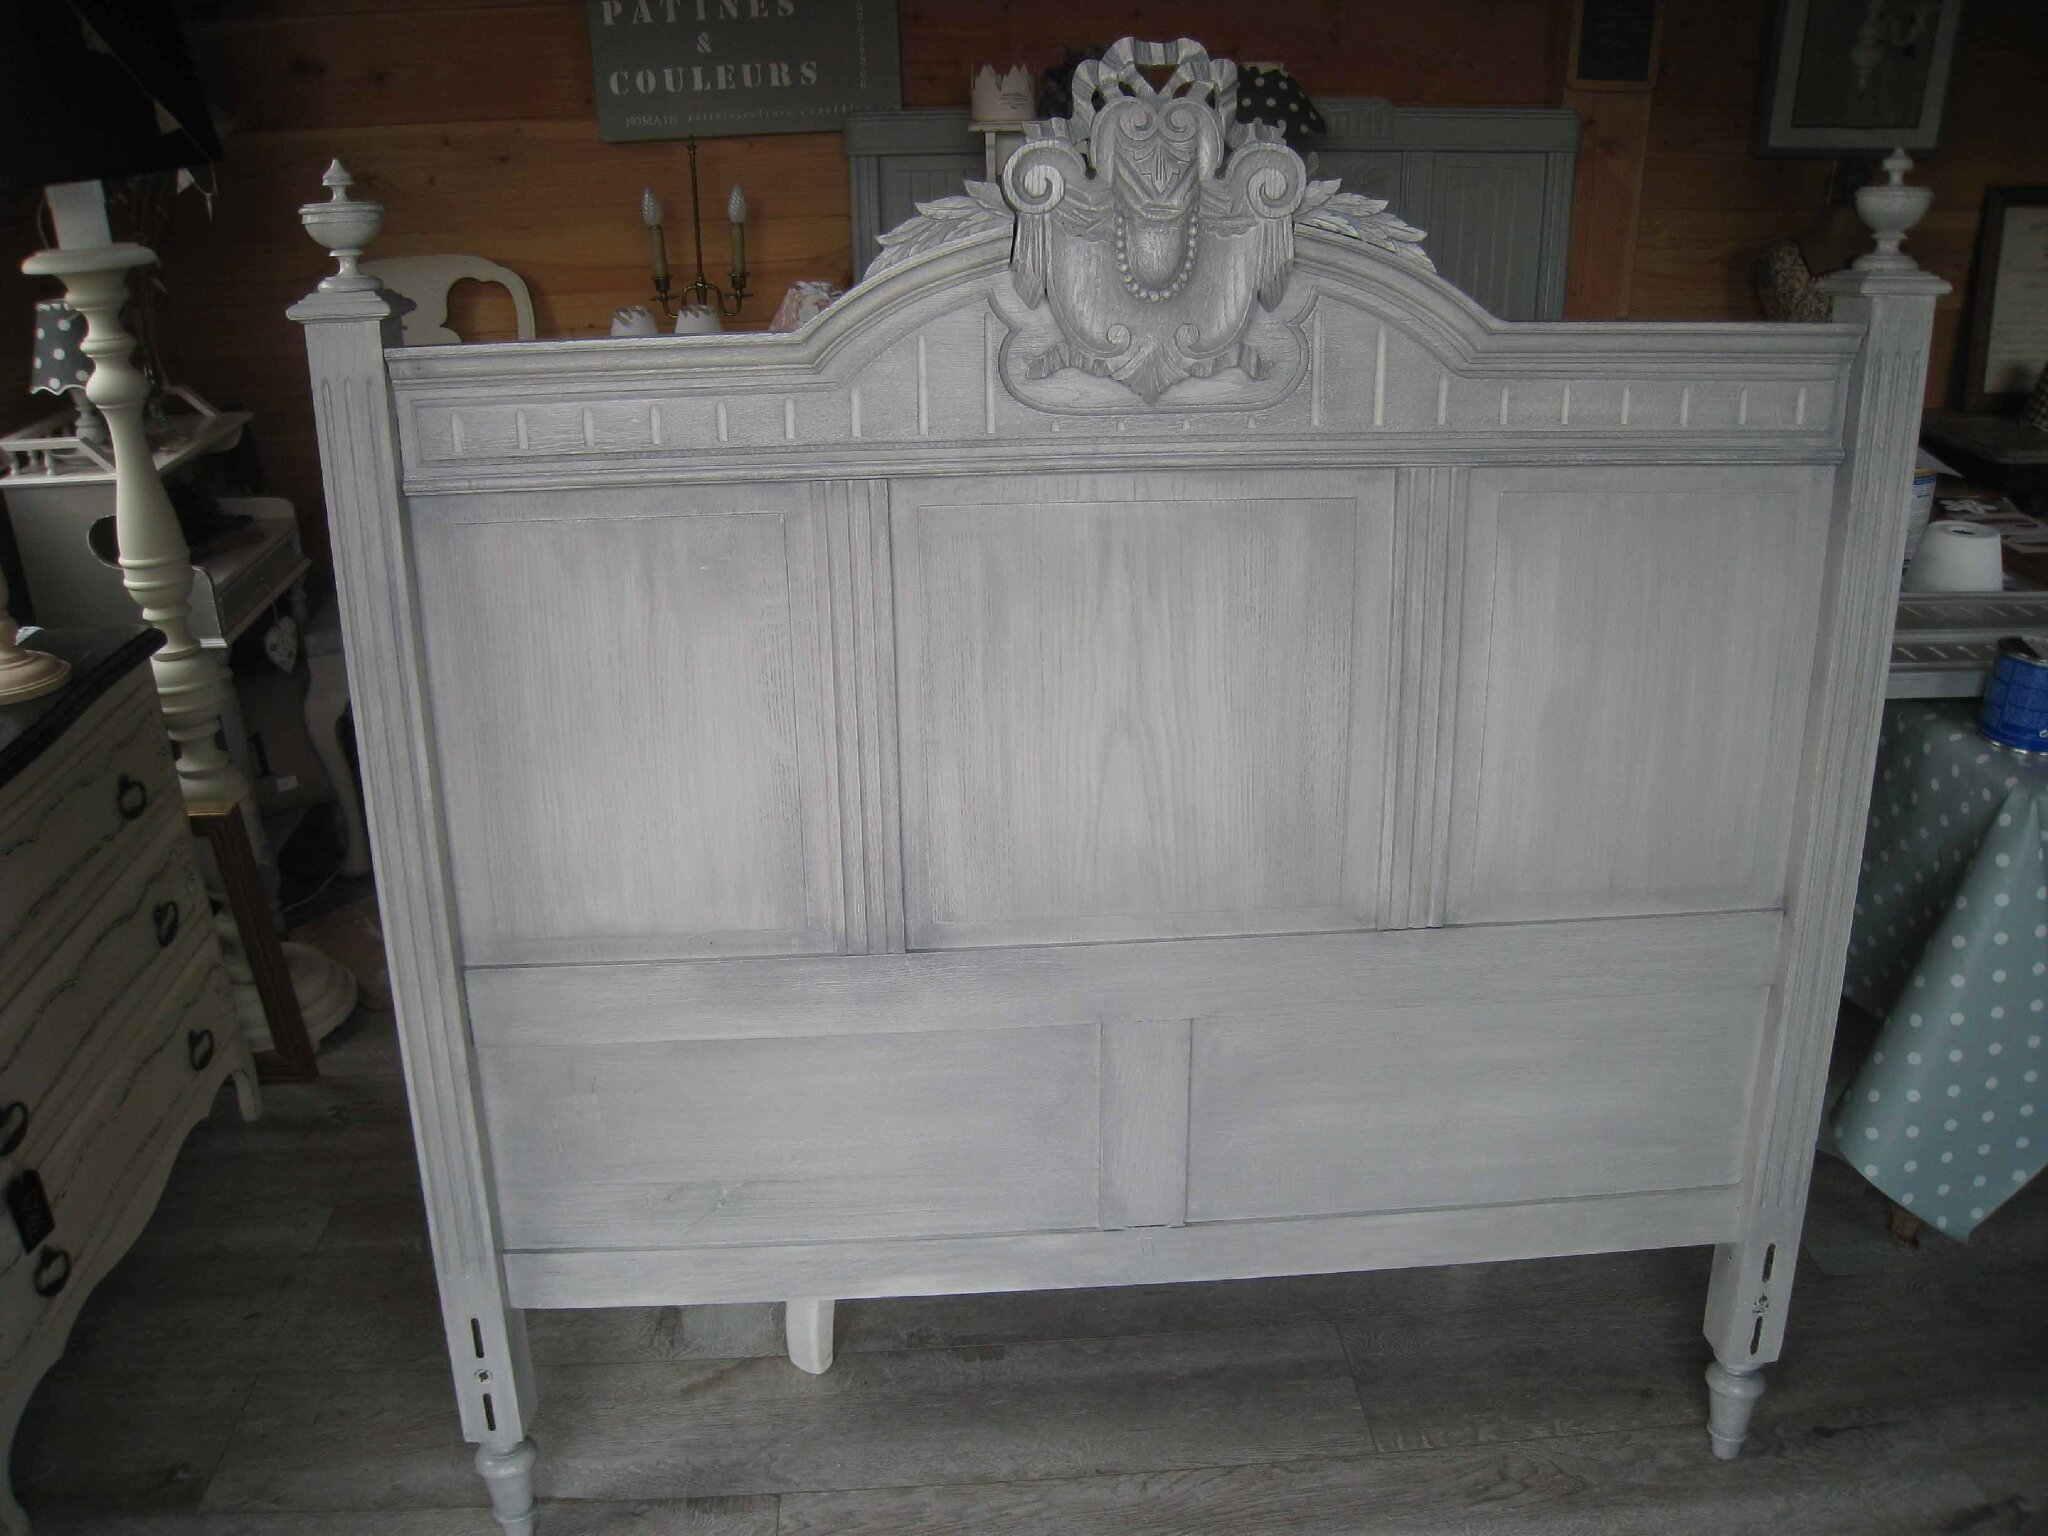 meubles patines anciennes awesome salle manger patine gris tons finition cire with meubles. Black Bedroom Furniture Sets. Home Design Ideas